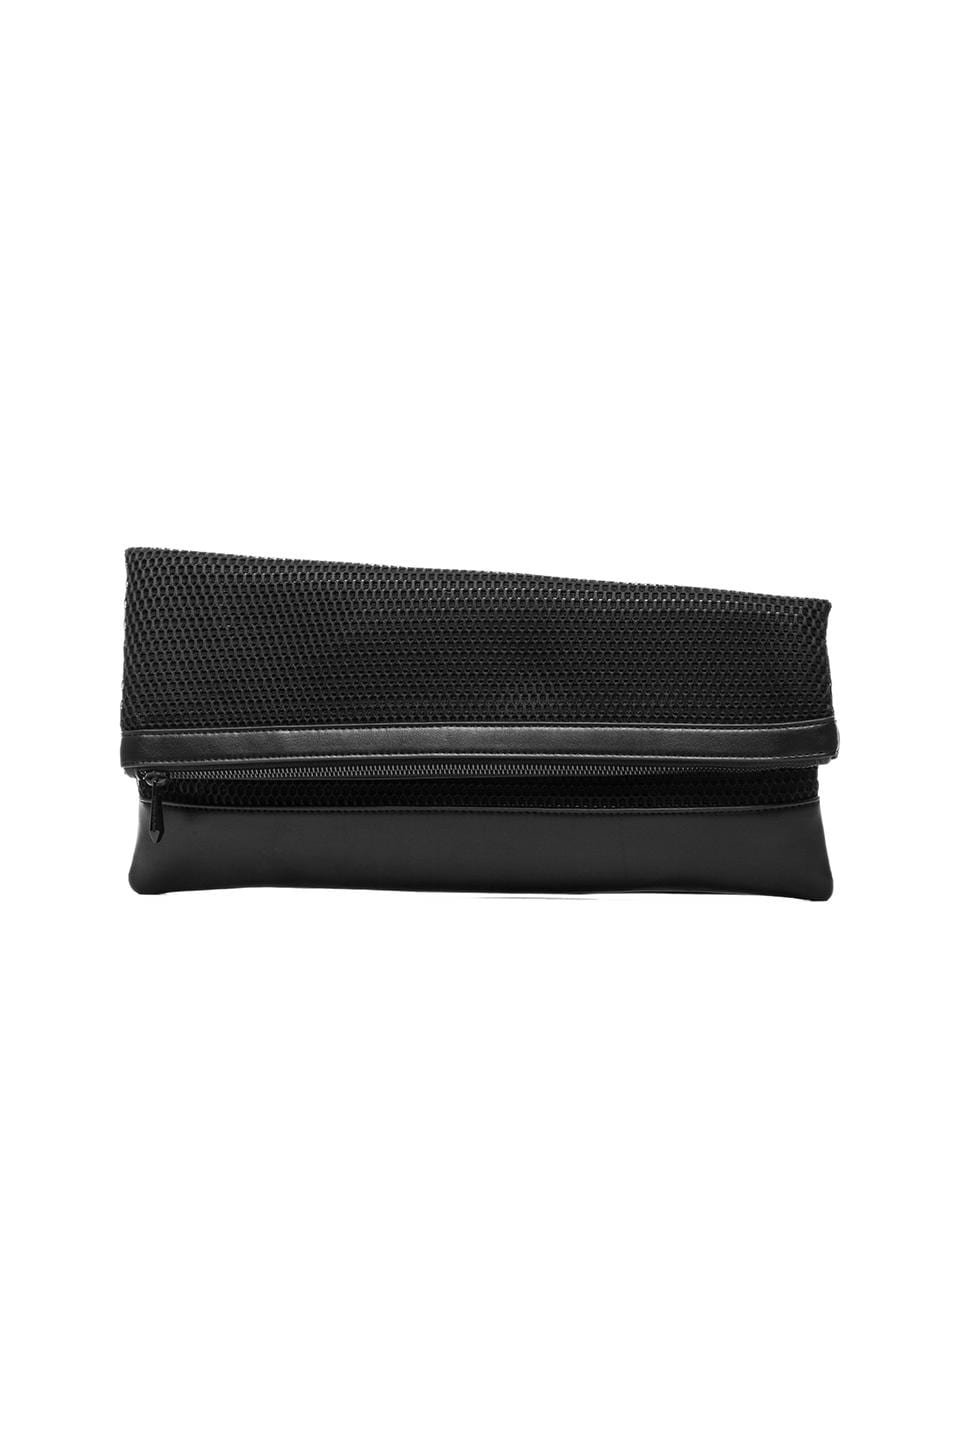 BCBGMAXAZRIA Mesh Fold-Over Clutch in Black